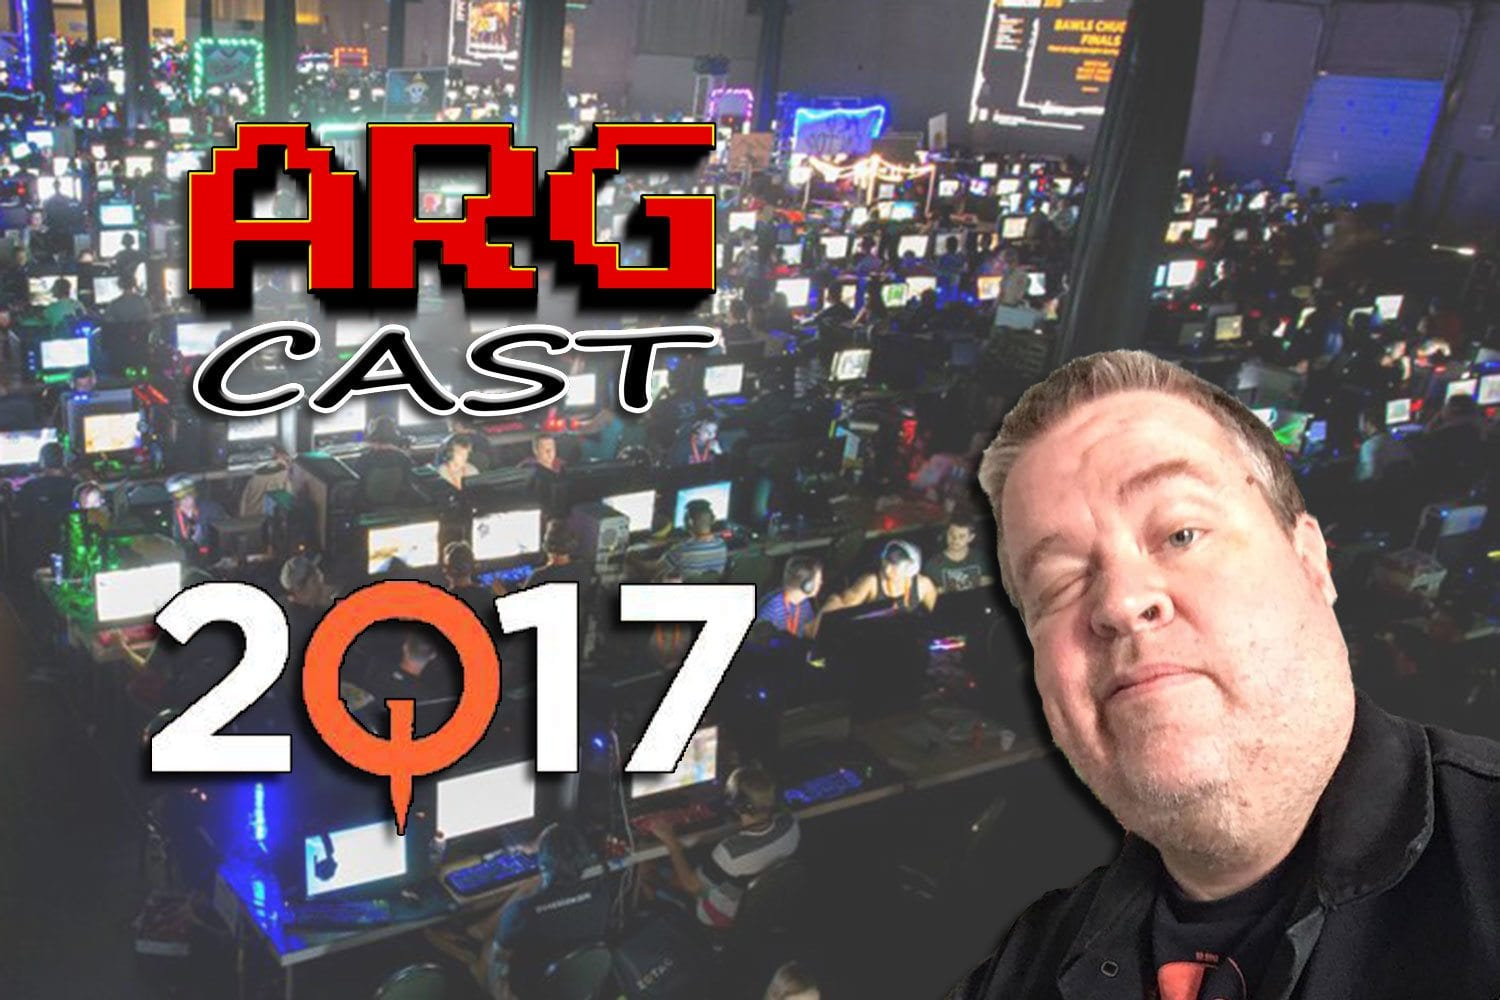 ARGcast #77: Live at QuakeCon 2017 with Robert Workman